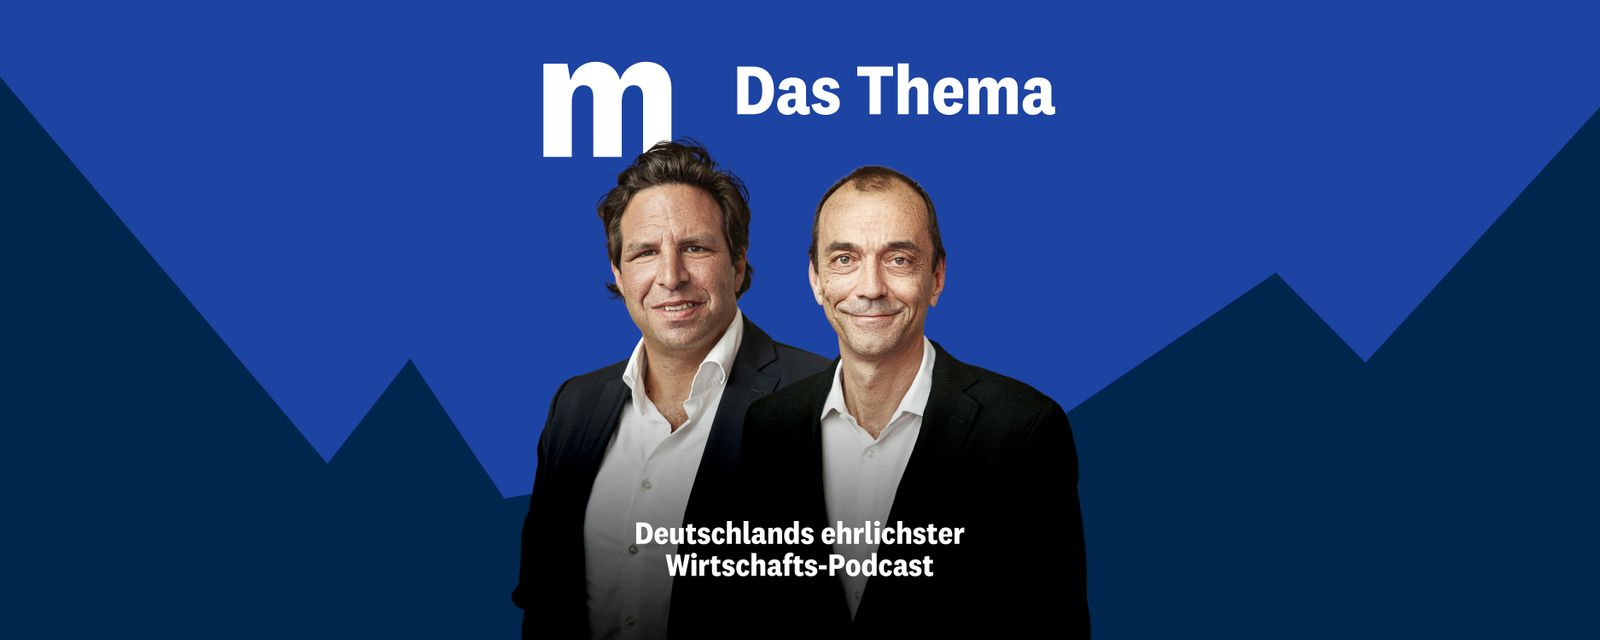 200929_Cover_Podcast-Thema_7500